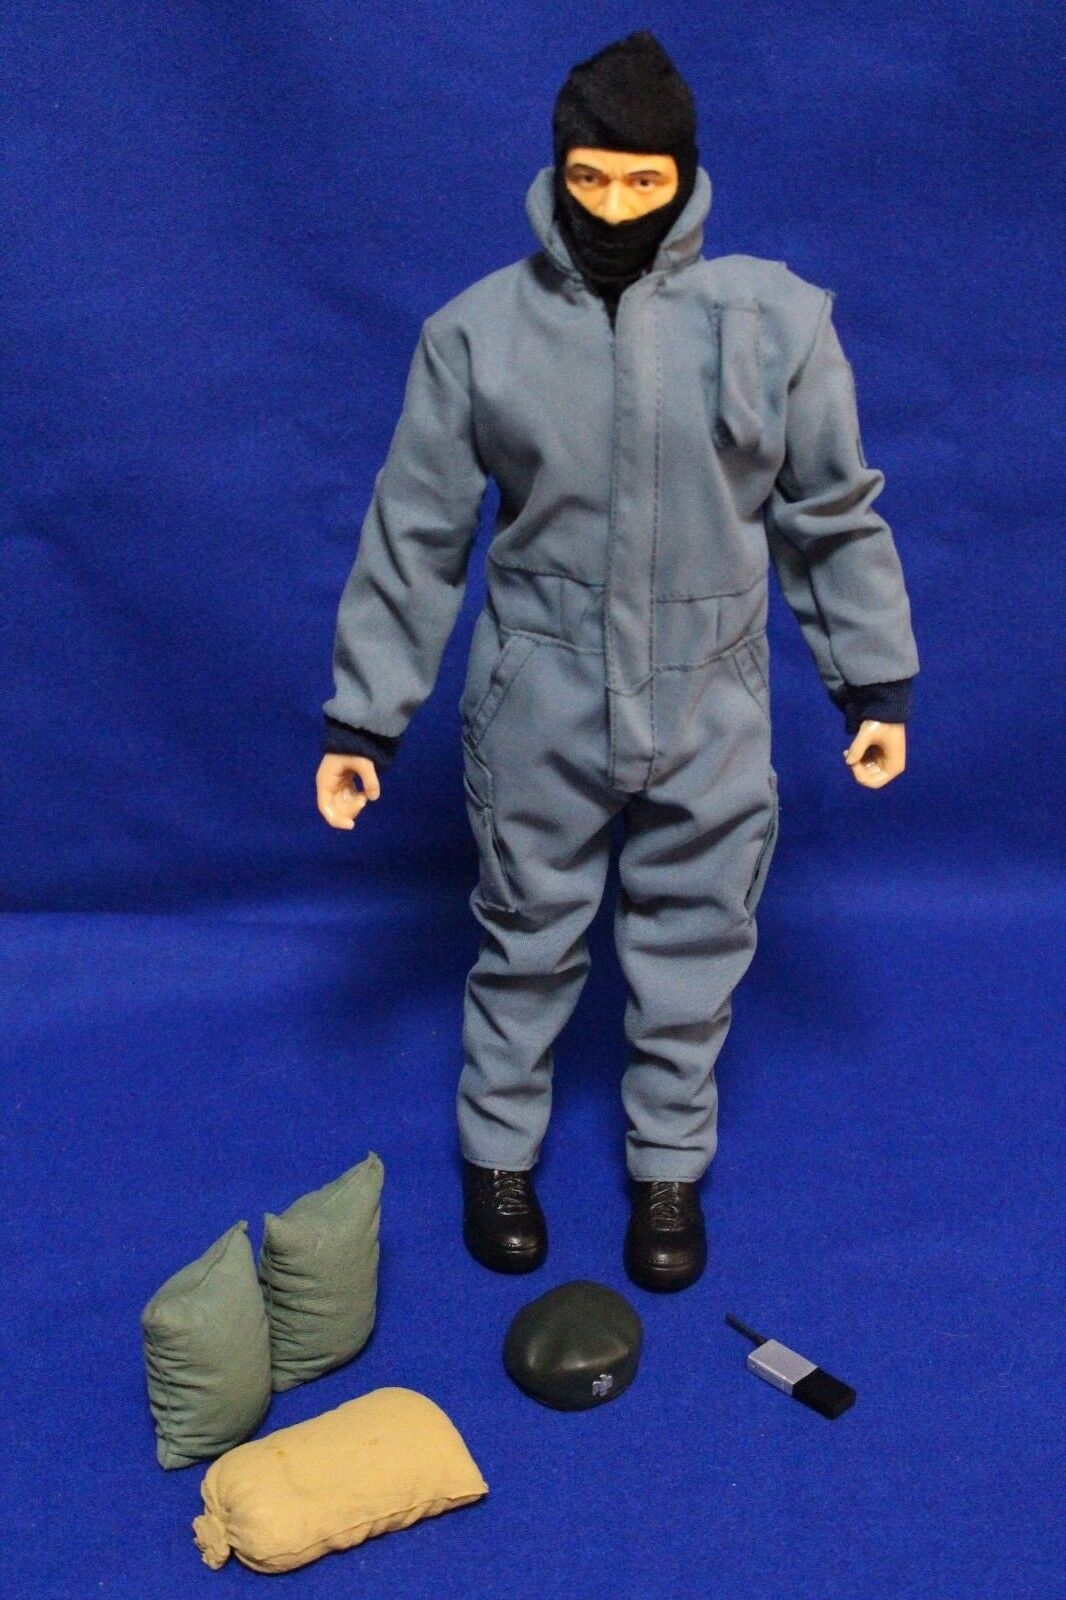 12 inch or 1 6th scale Toy Action Figure